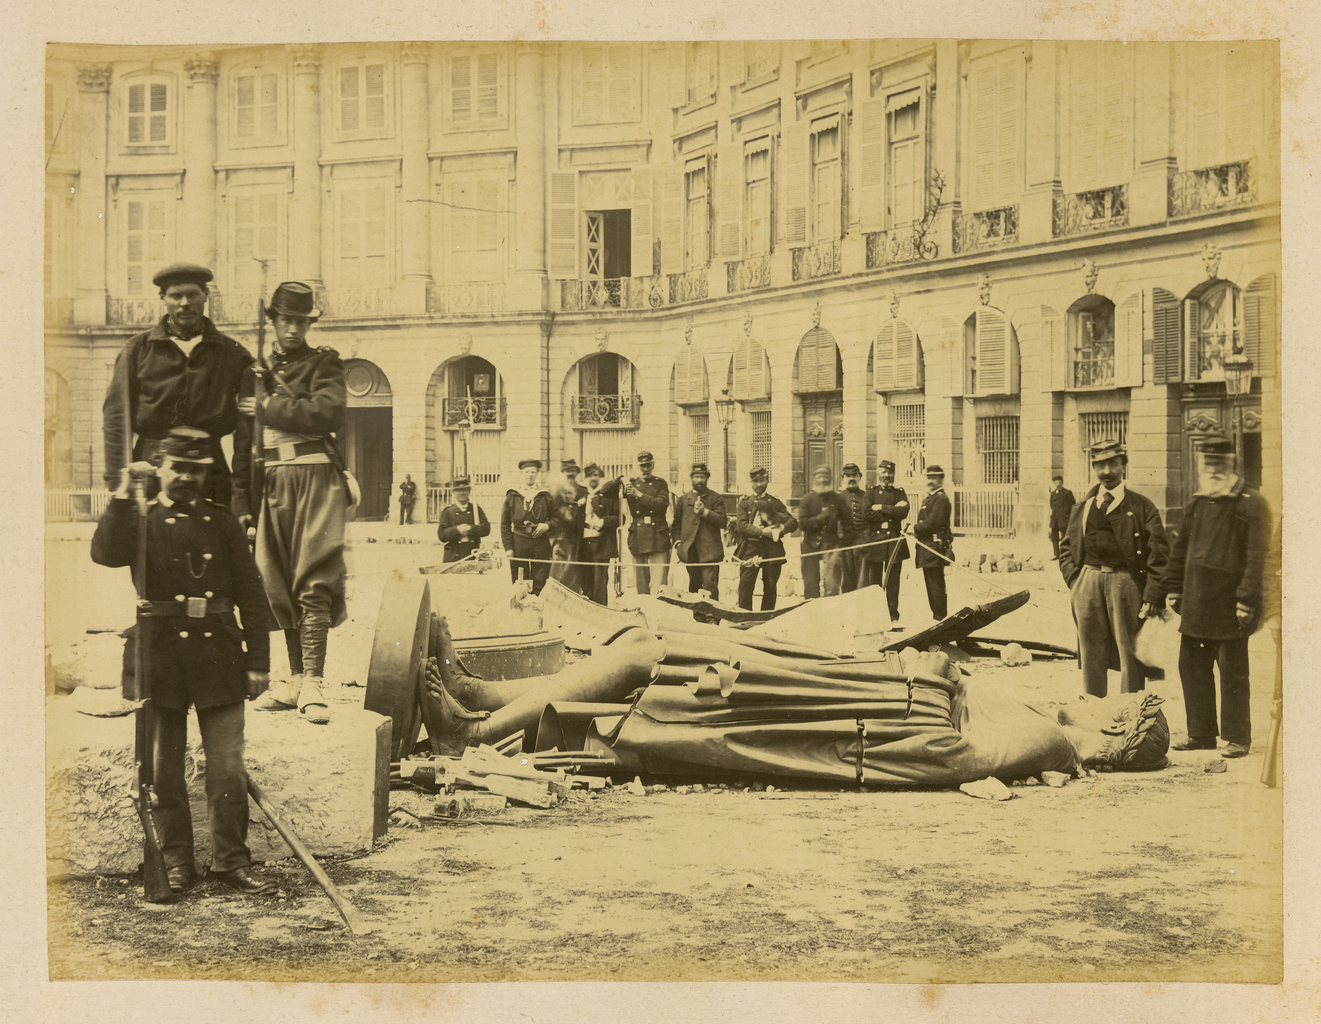 18 mars 1871 - Début de la Commune de Paris Photo-commune-paris-napoleon-colonne-vendome